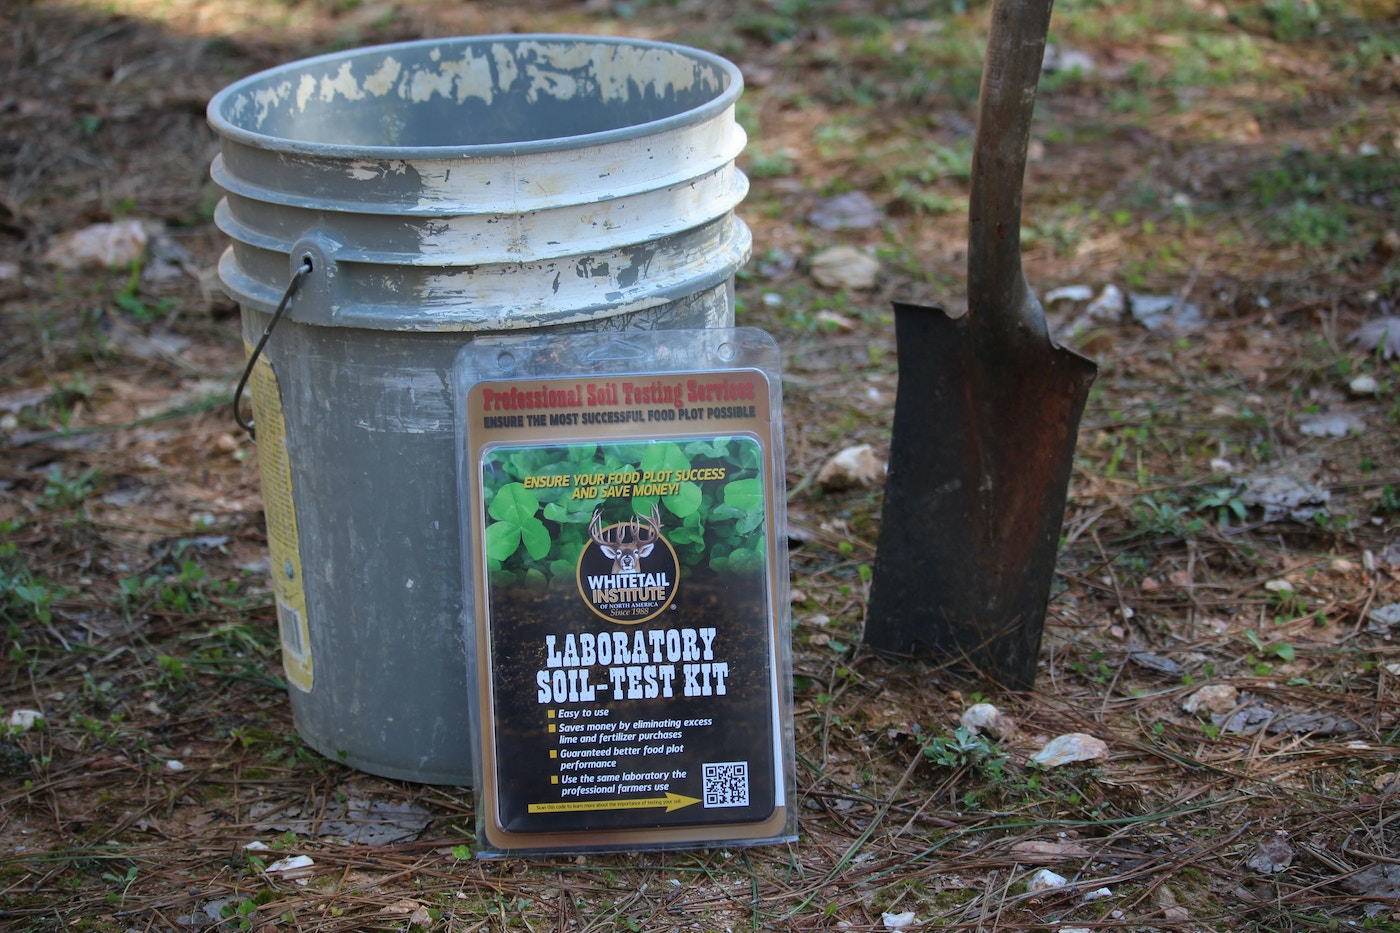 Take soil samples now for food plot readiness | Grand View